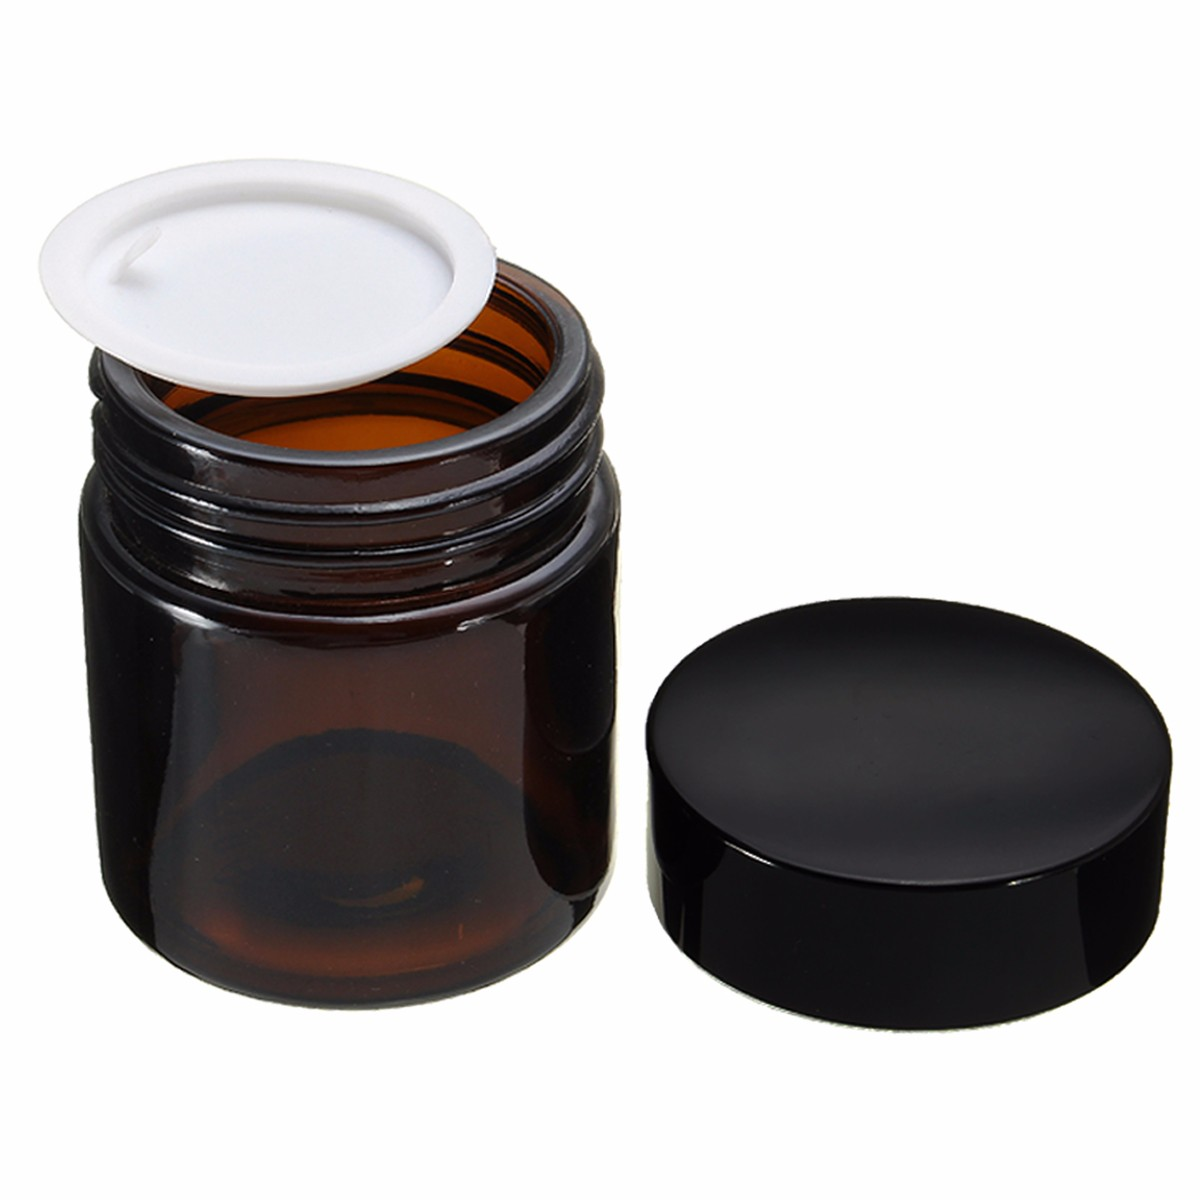 1pcs Brown Round Empty Amber Glass Jar Makeup Pot 120ml Cream Jars Cosmetic Packaging Container Cosmetic Glass Jar With Lid 6 pcs 15g 30g 50g 1oz empty upscale refillable black cosmetics cream glass bottle container pot case jar with black lid